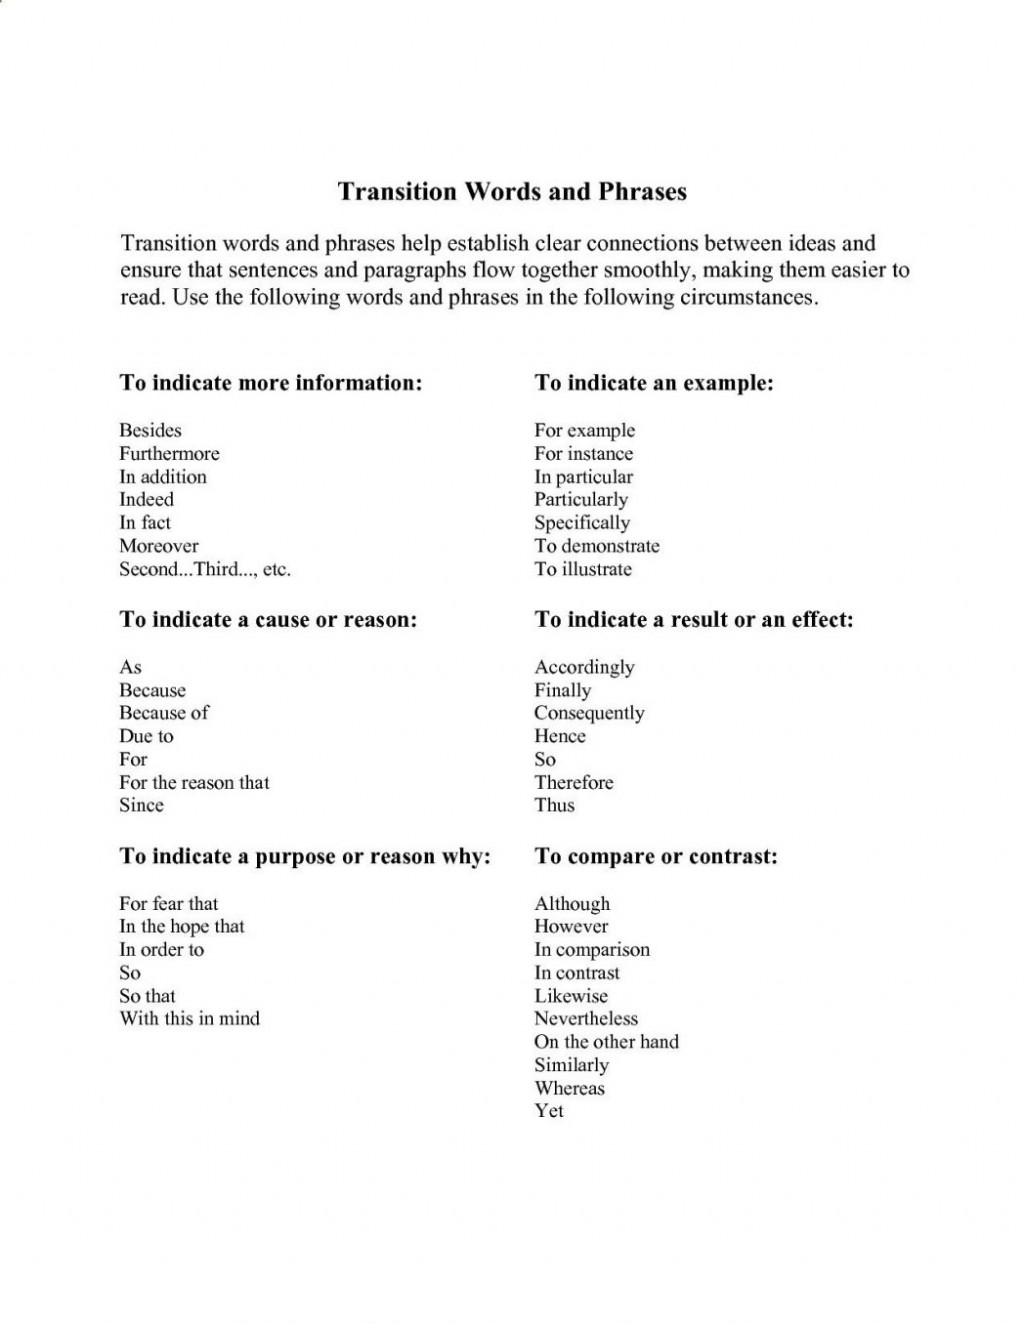 022 Transitional Words And Phrases Help An Essay To Flow More Smoothly Transition For Essays First Body Paragraph Start Pdf Next 1048x1356 Transitions In Outstanding Use College Writing Ppt Smooth Large